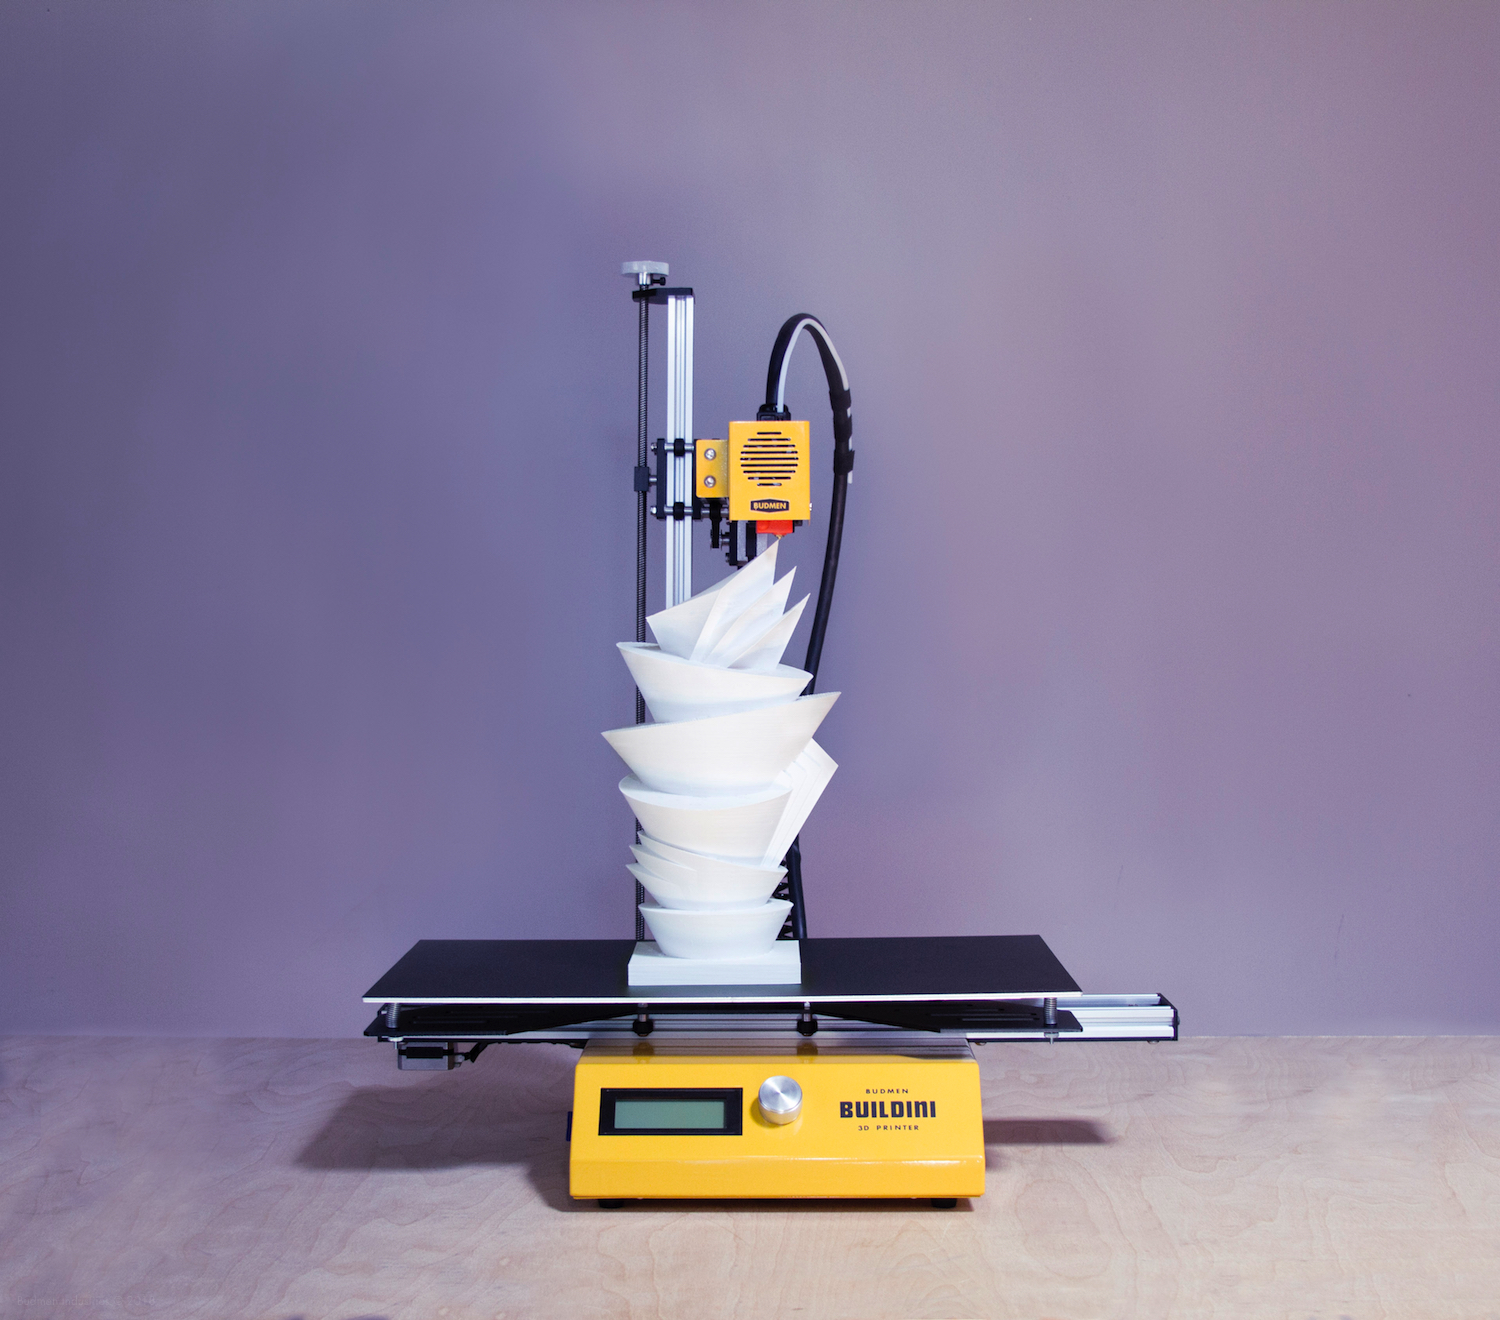 The Budmen Buildini 3D printer creating an artistic sculpture. Photo via Budmen Industries.